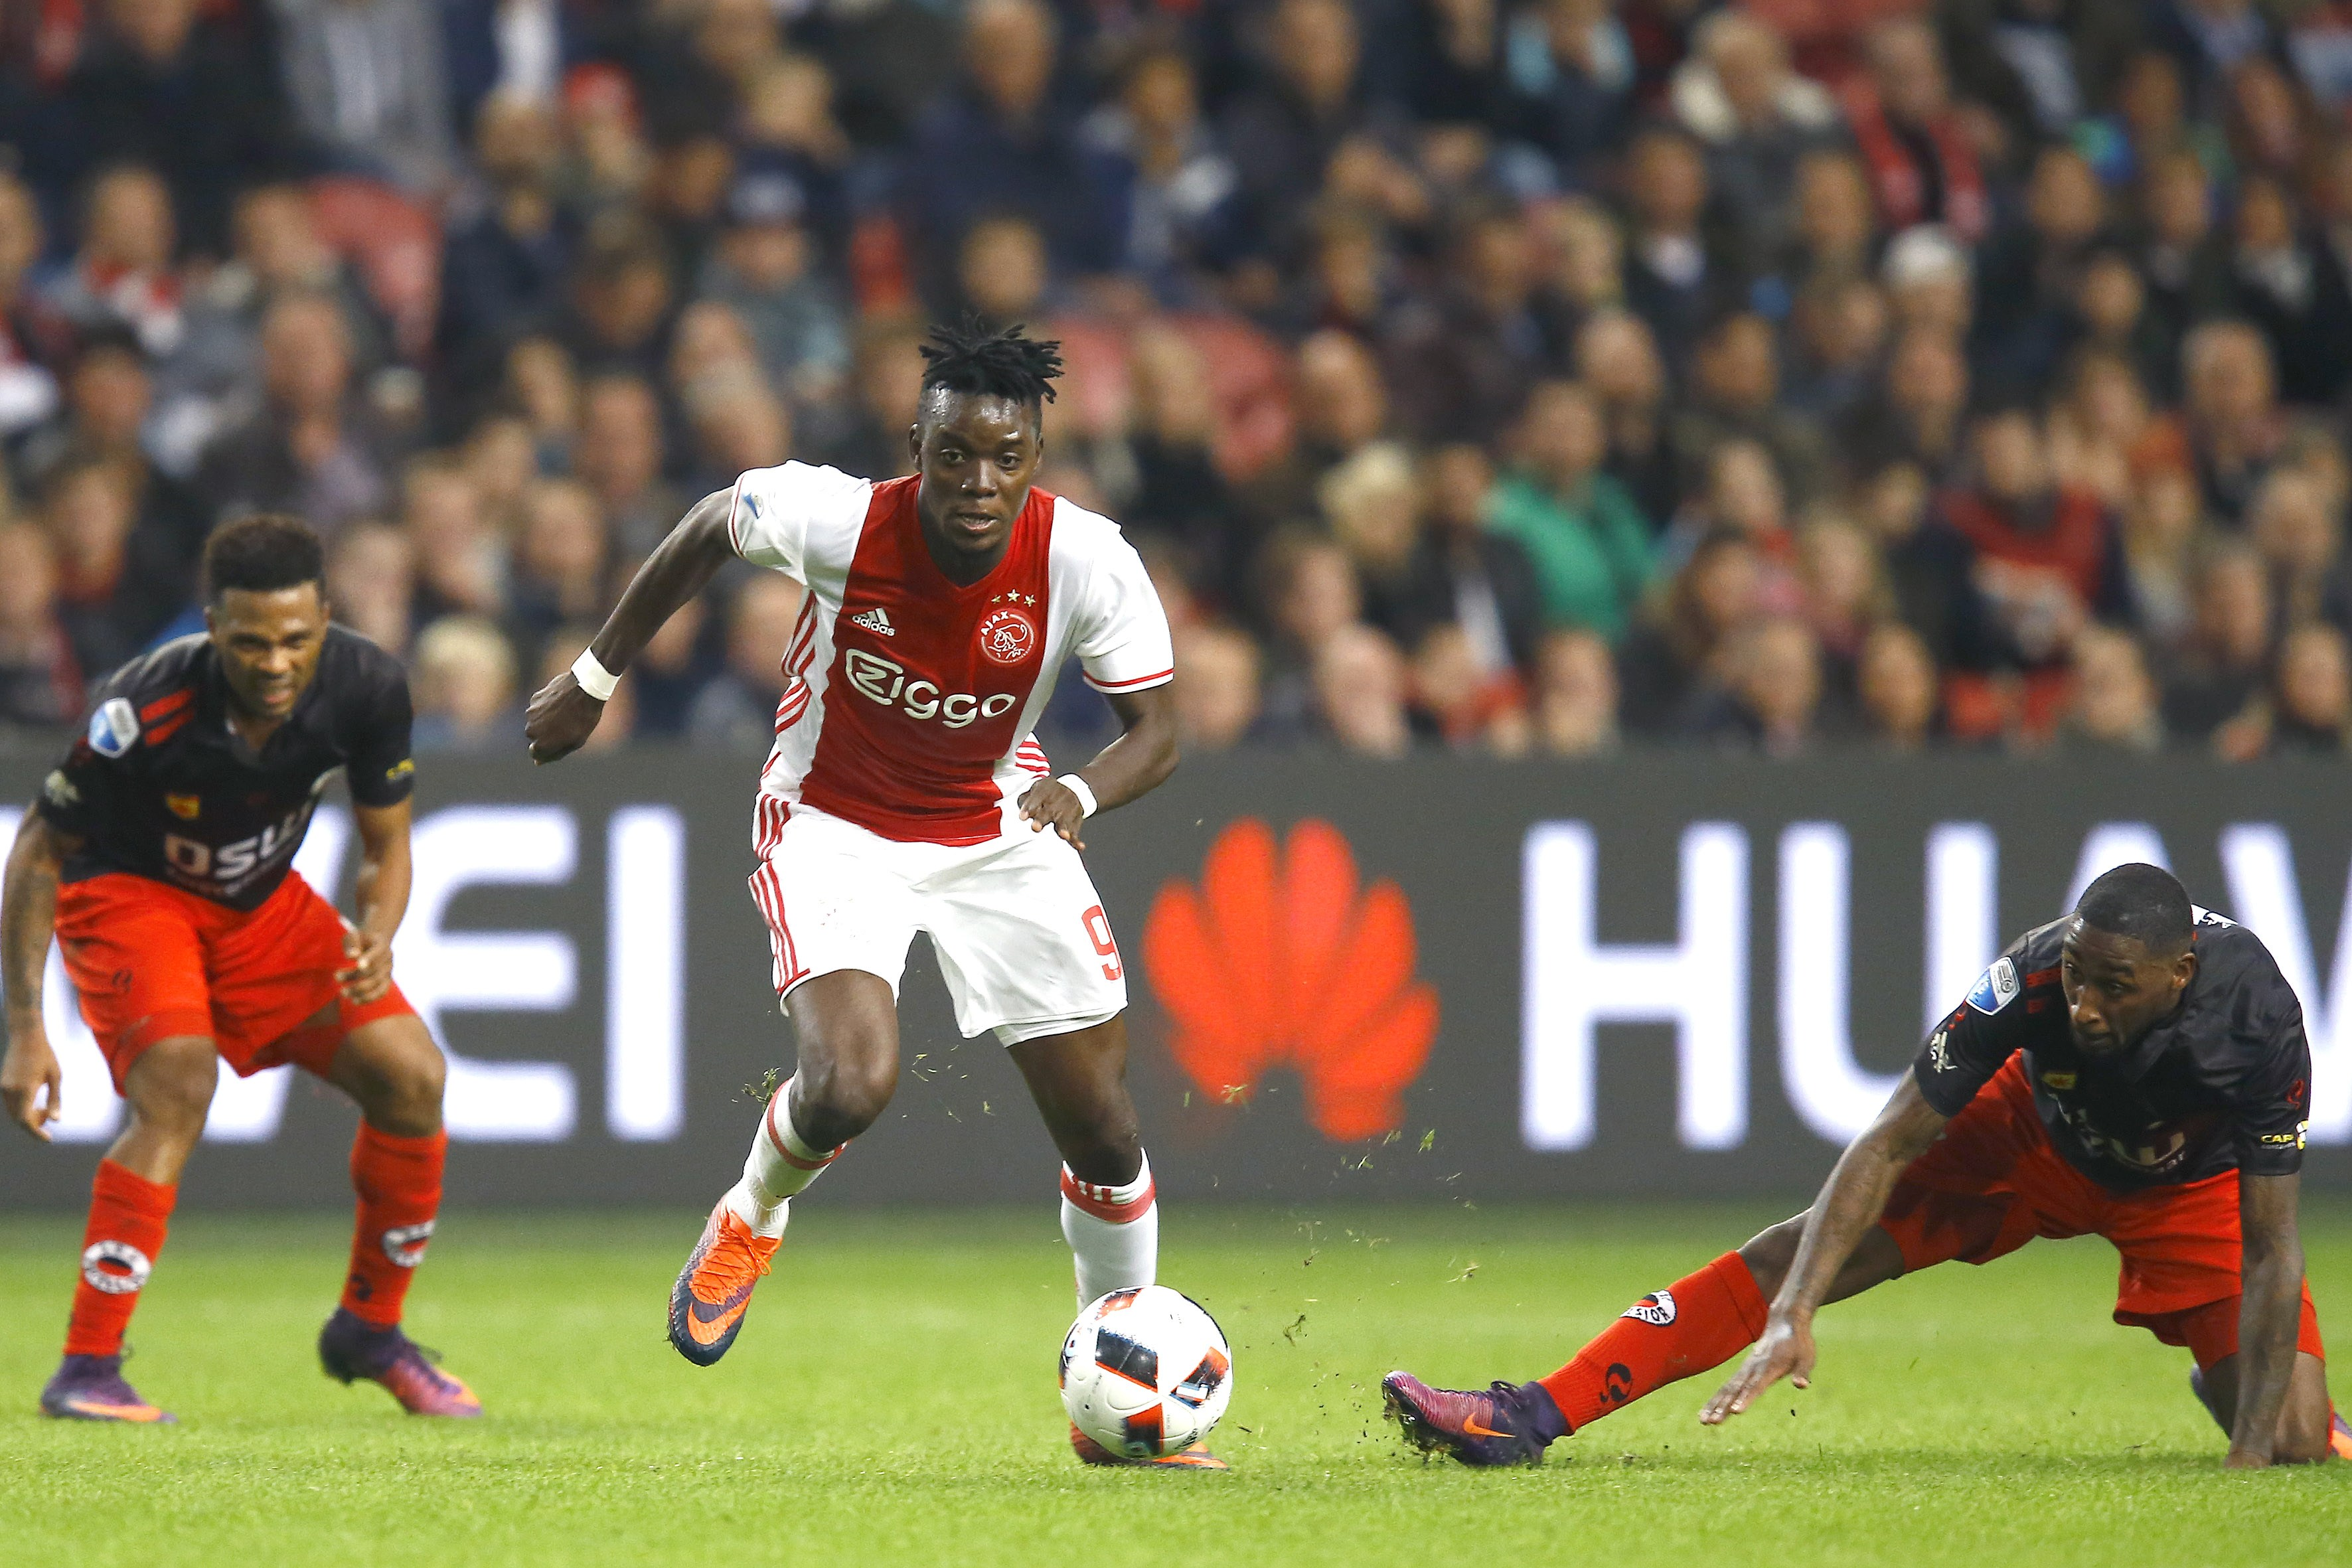 (l-r) Fredy Ribeiro of Excelsior, Bertrand Traore of Ajax Amsterdam, Jeffry Fortes of Excelsiorduring the Dutch Eredivisie match between Ajax Amsterdam and sbv Excelsior at the Amsterdam Arena on October 29, 2016 in Amsterdam, The Netherlands(Photo by VI Images via Getty Images)